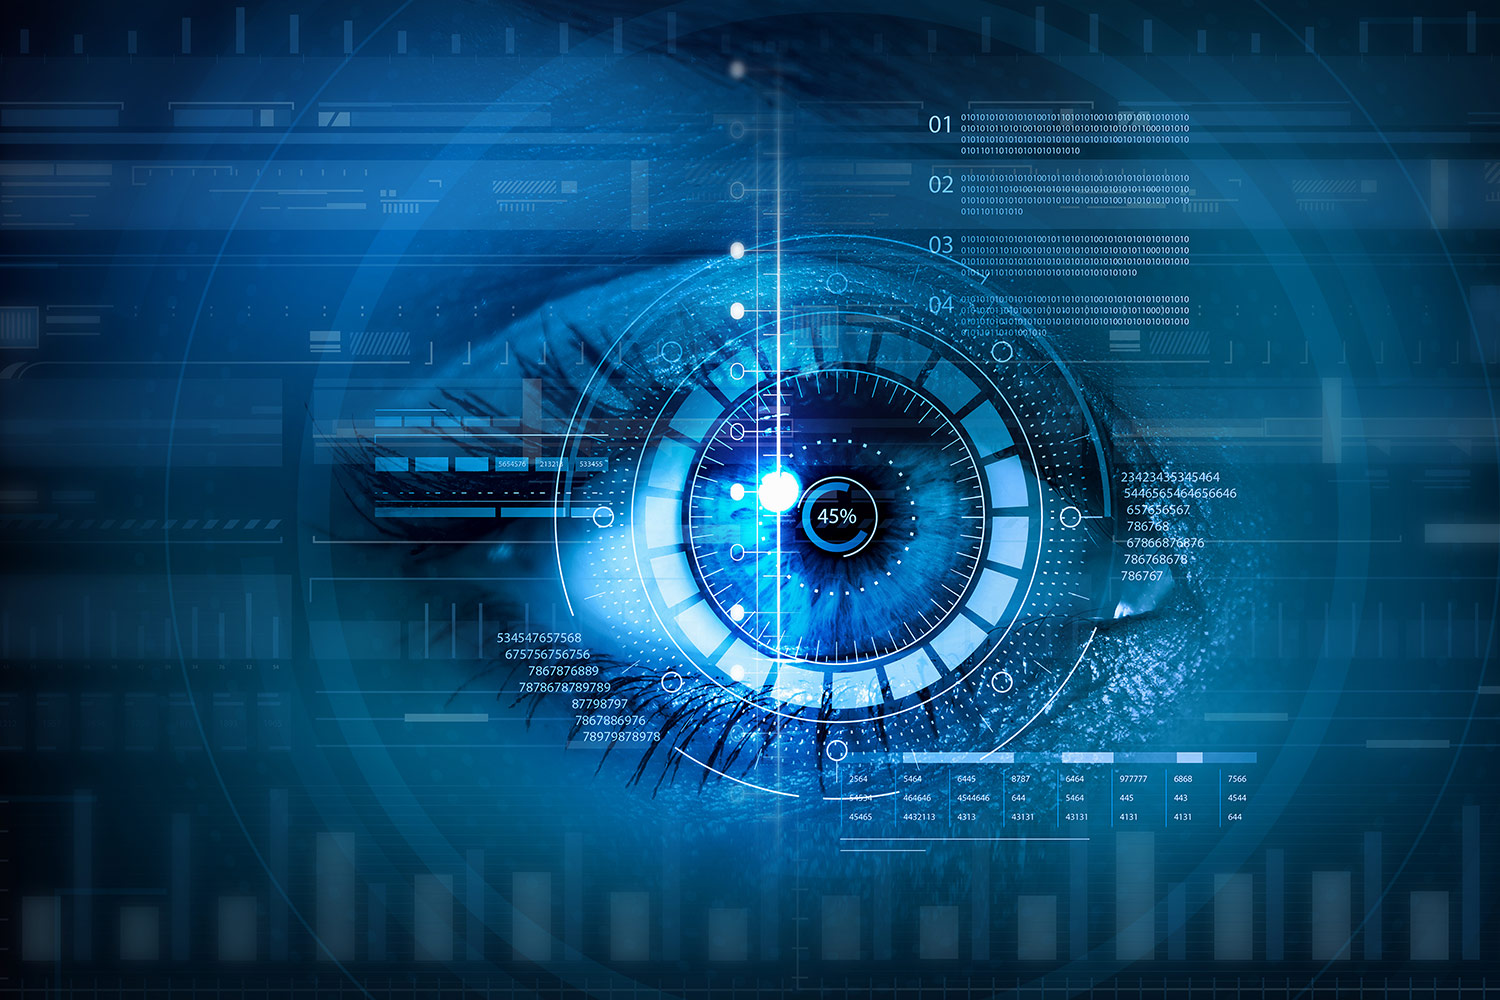 NHS Biometrics Iris Scan